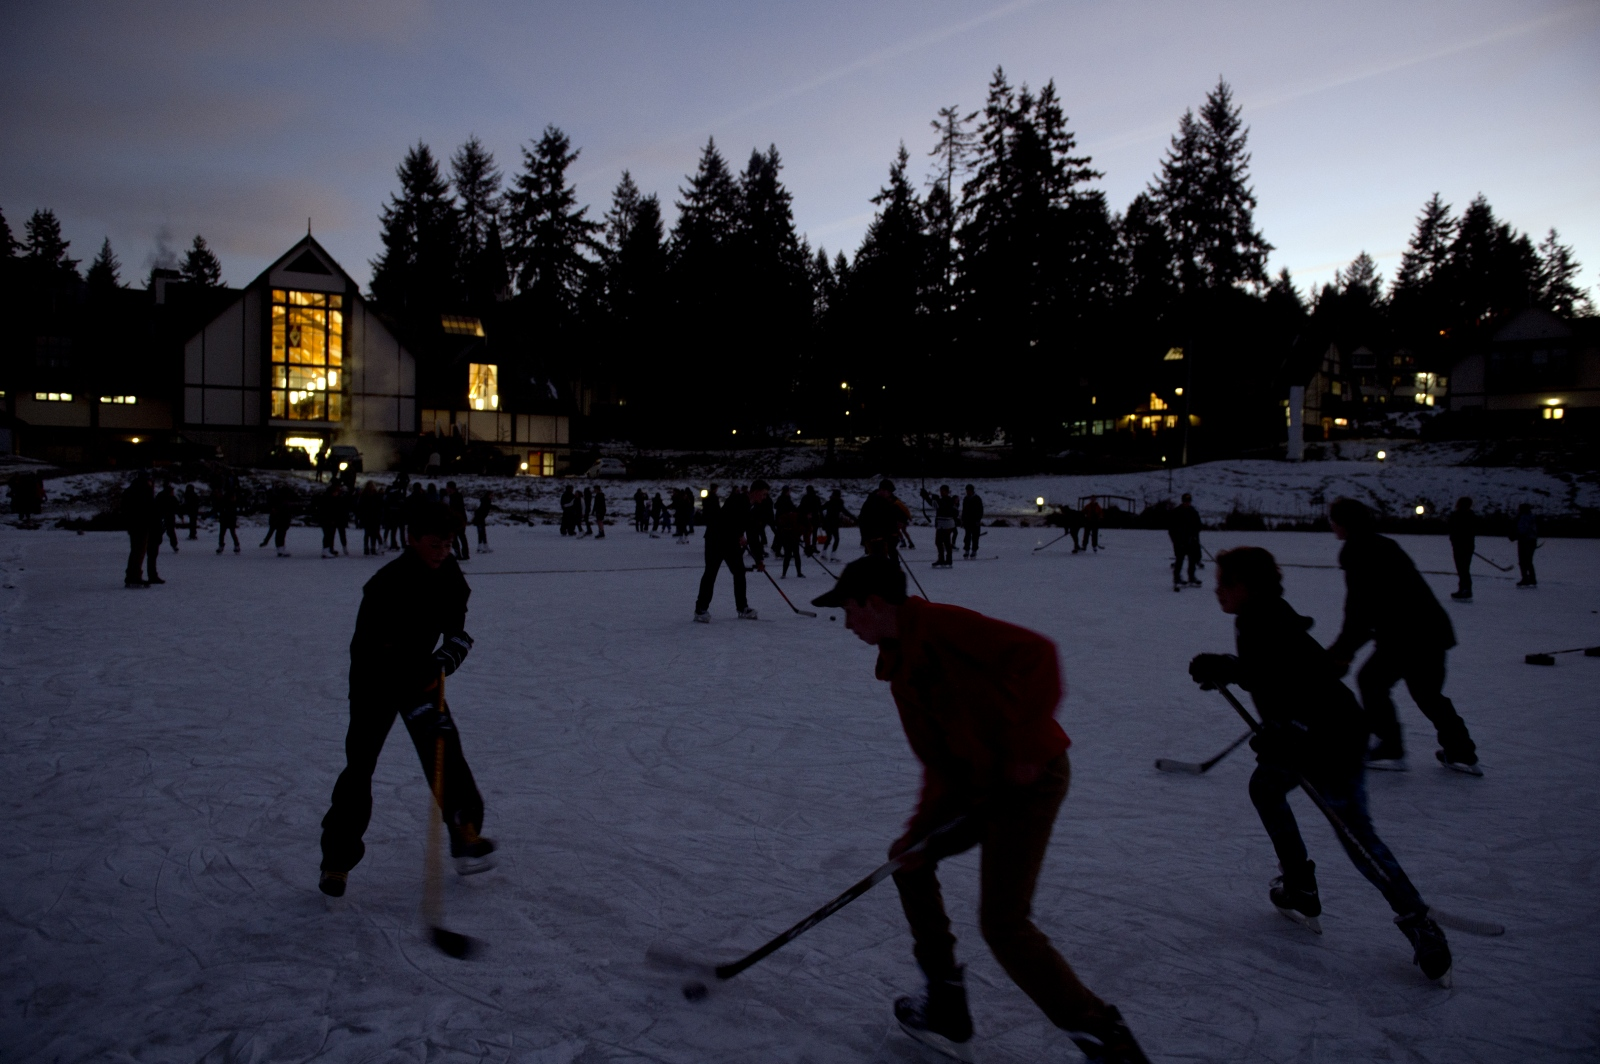 Pond hockey | Shawnigan Lake, B.C.